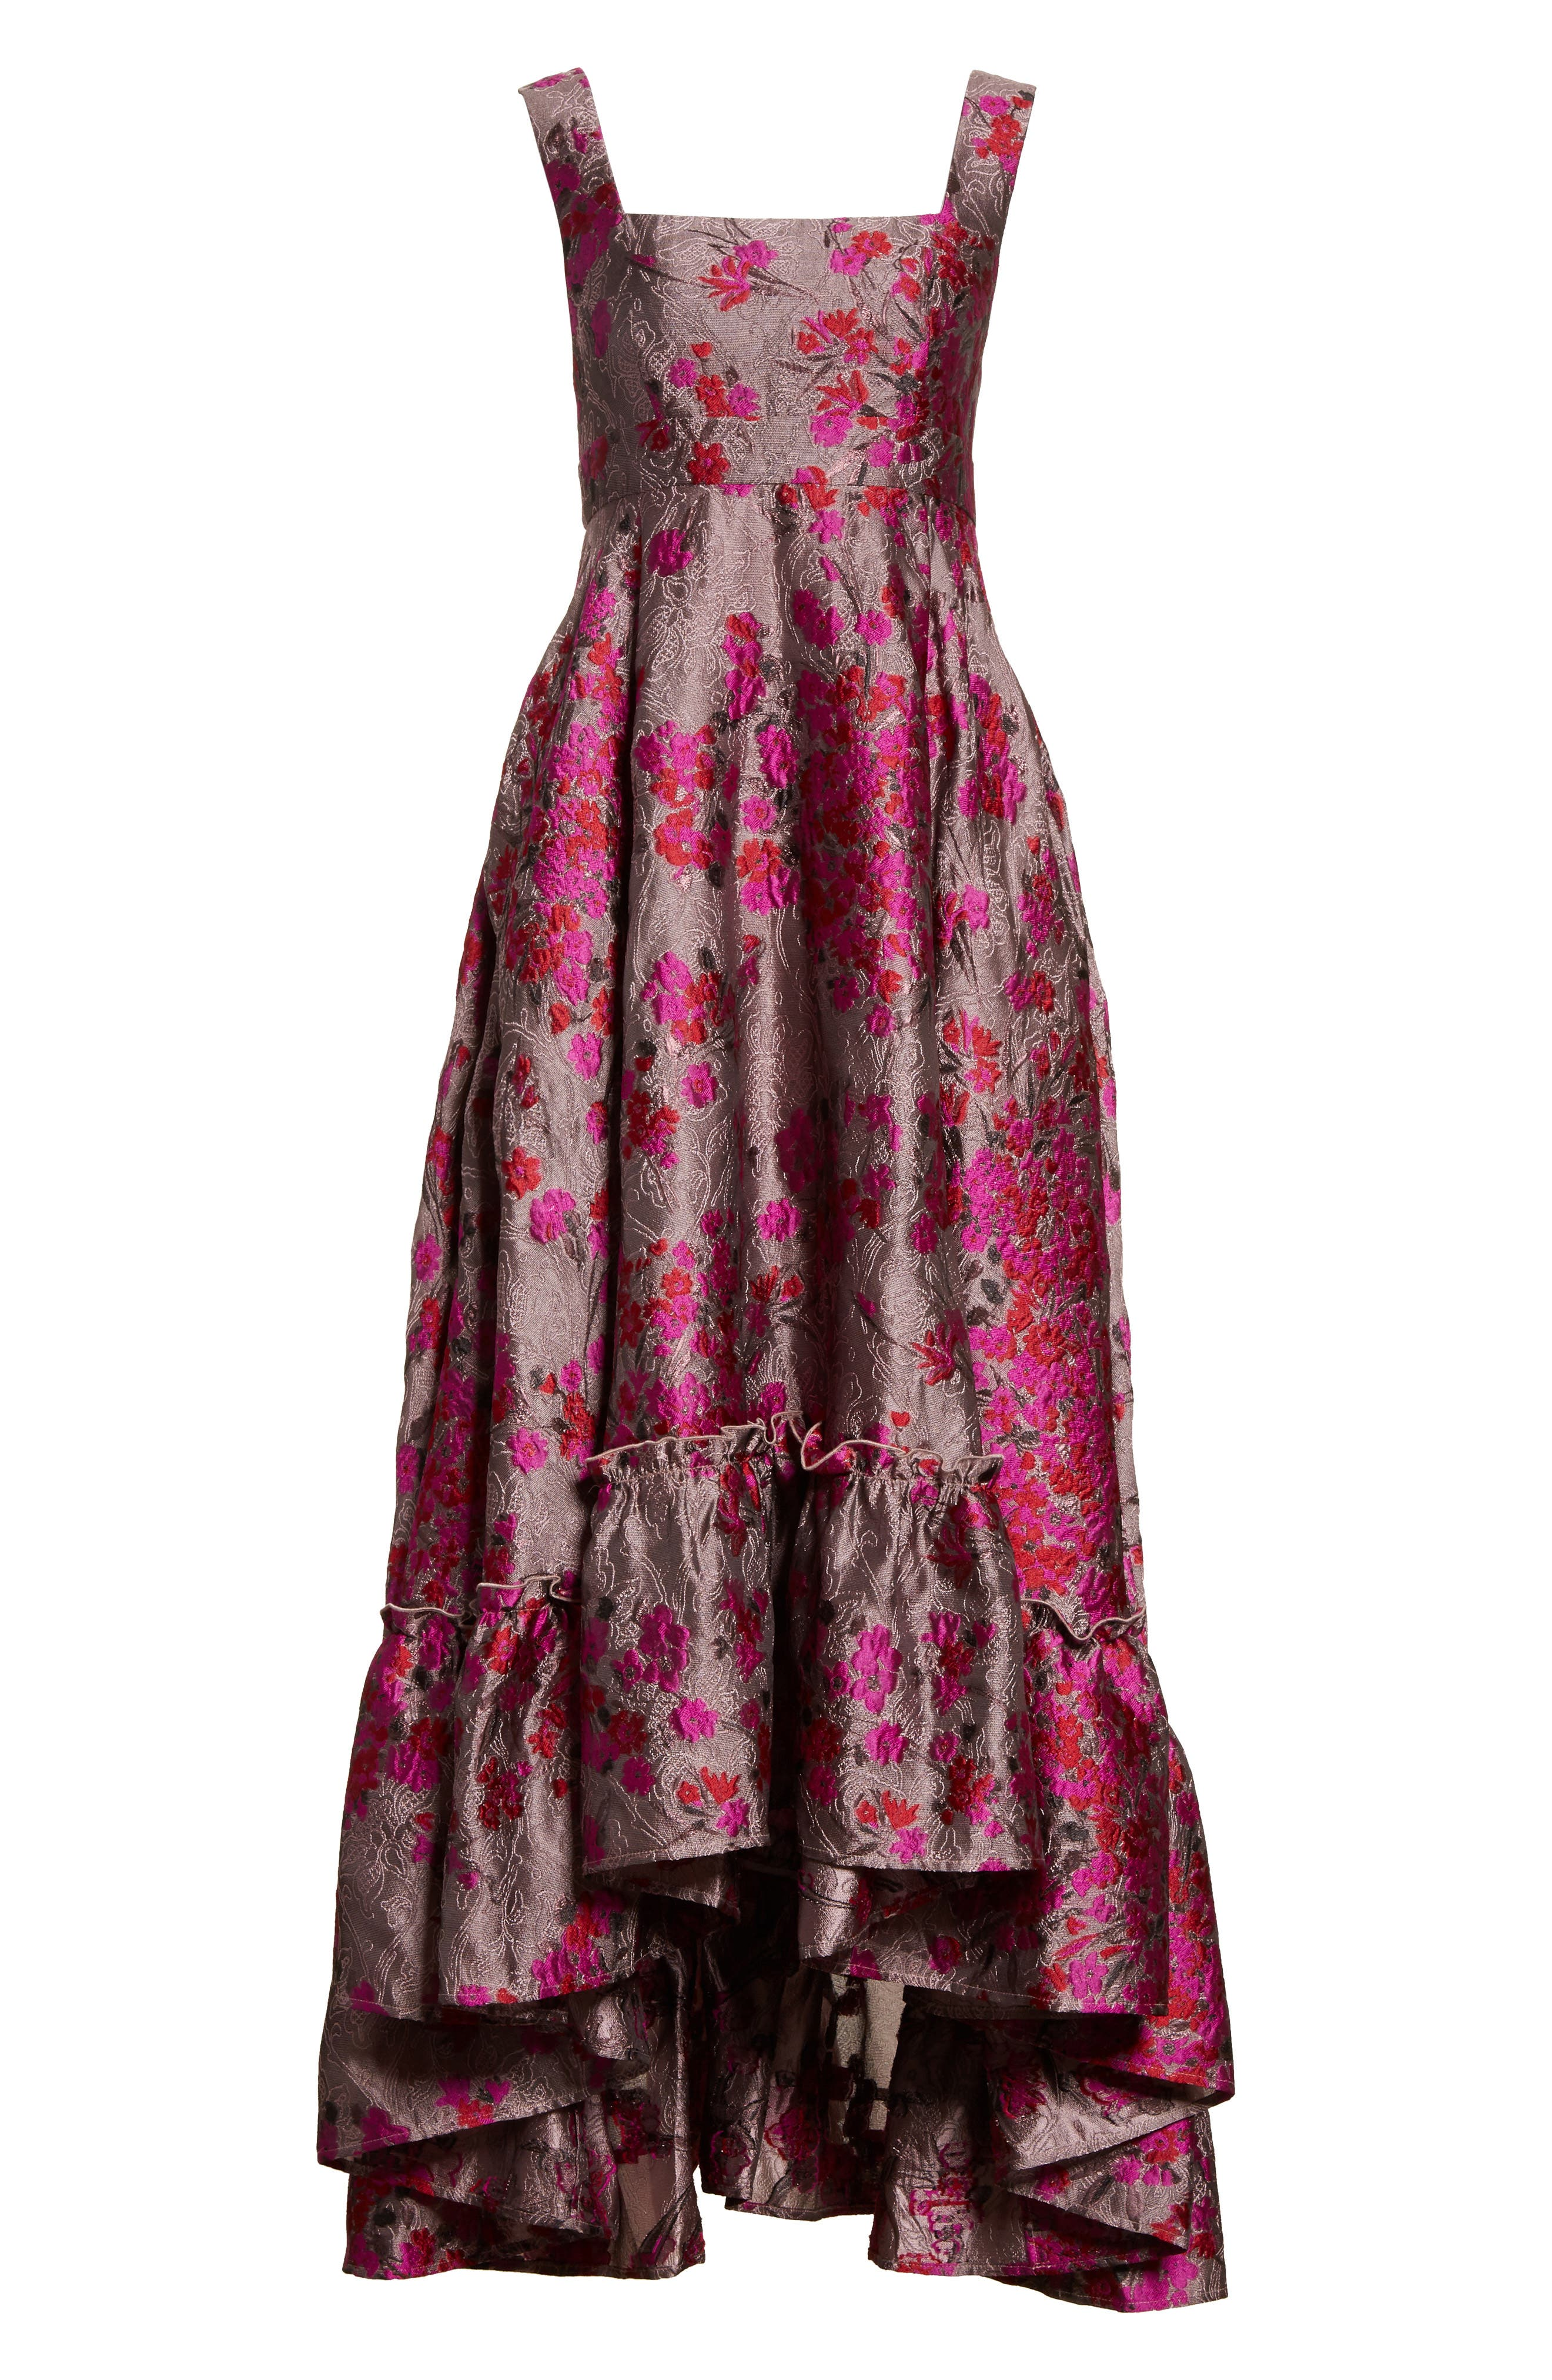 Metallic Jacquard Midi Dress,                             Alternate thumbnail 8, color,                             Magenta